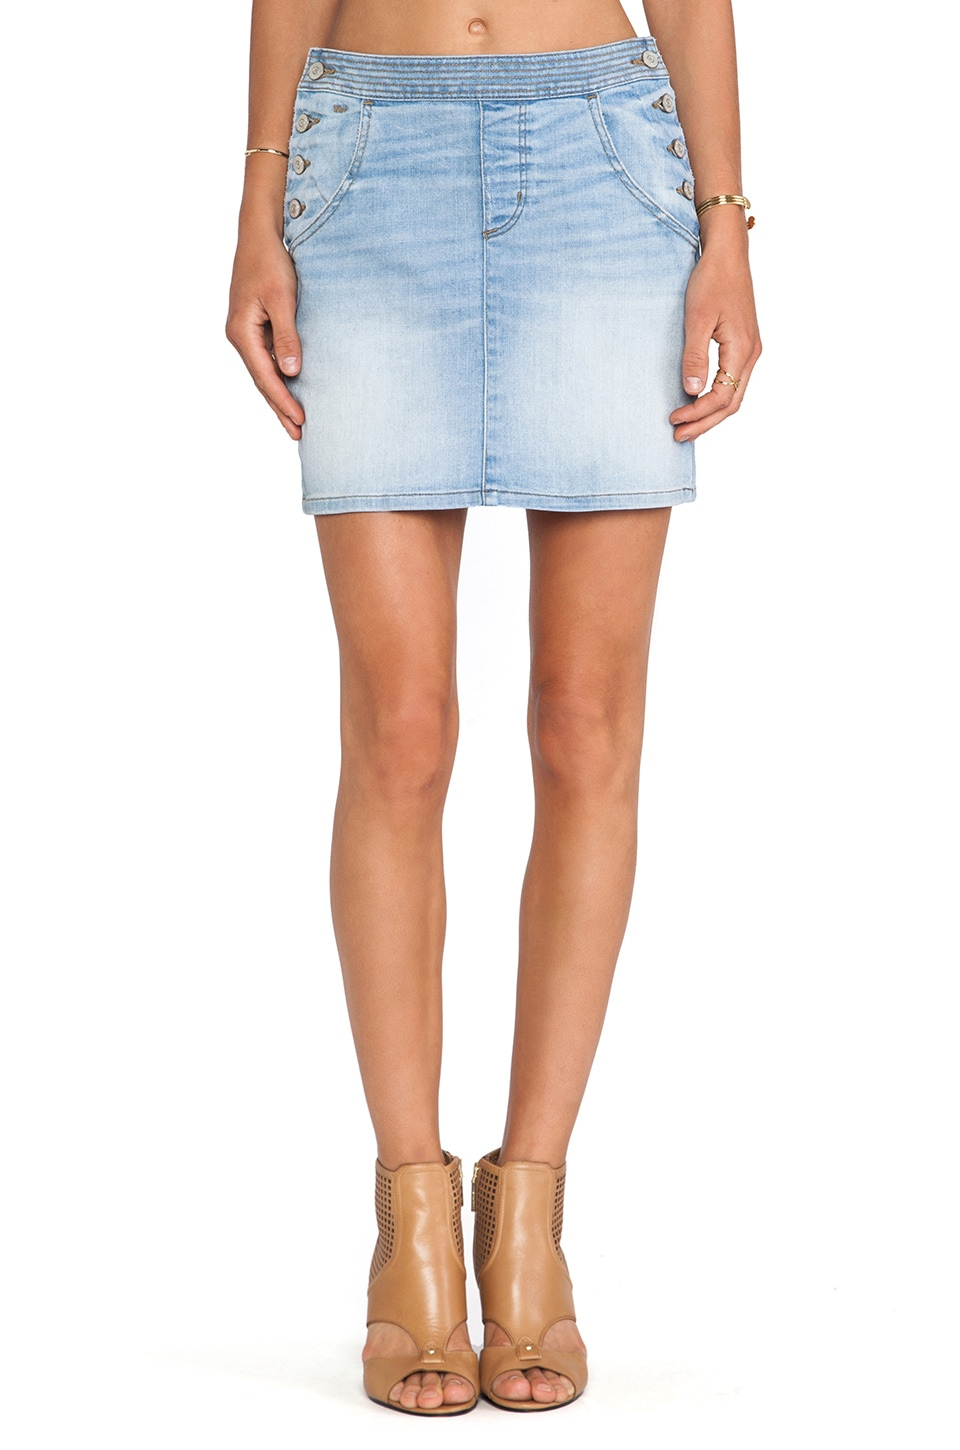 Marc by Marc Jacobs A Line Skirt in Jahoo